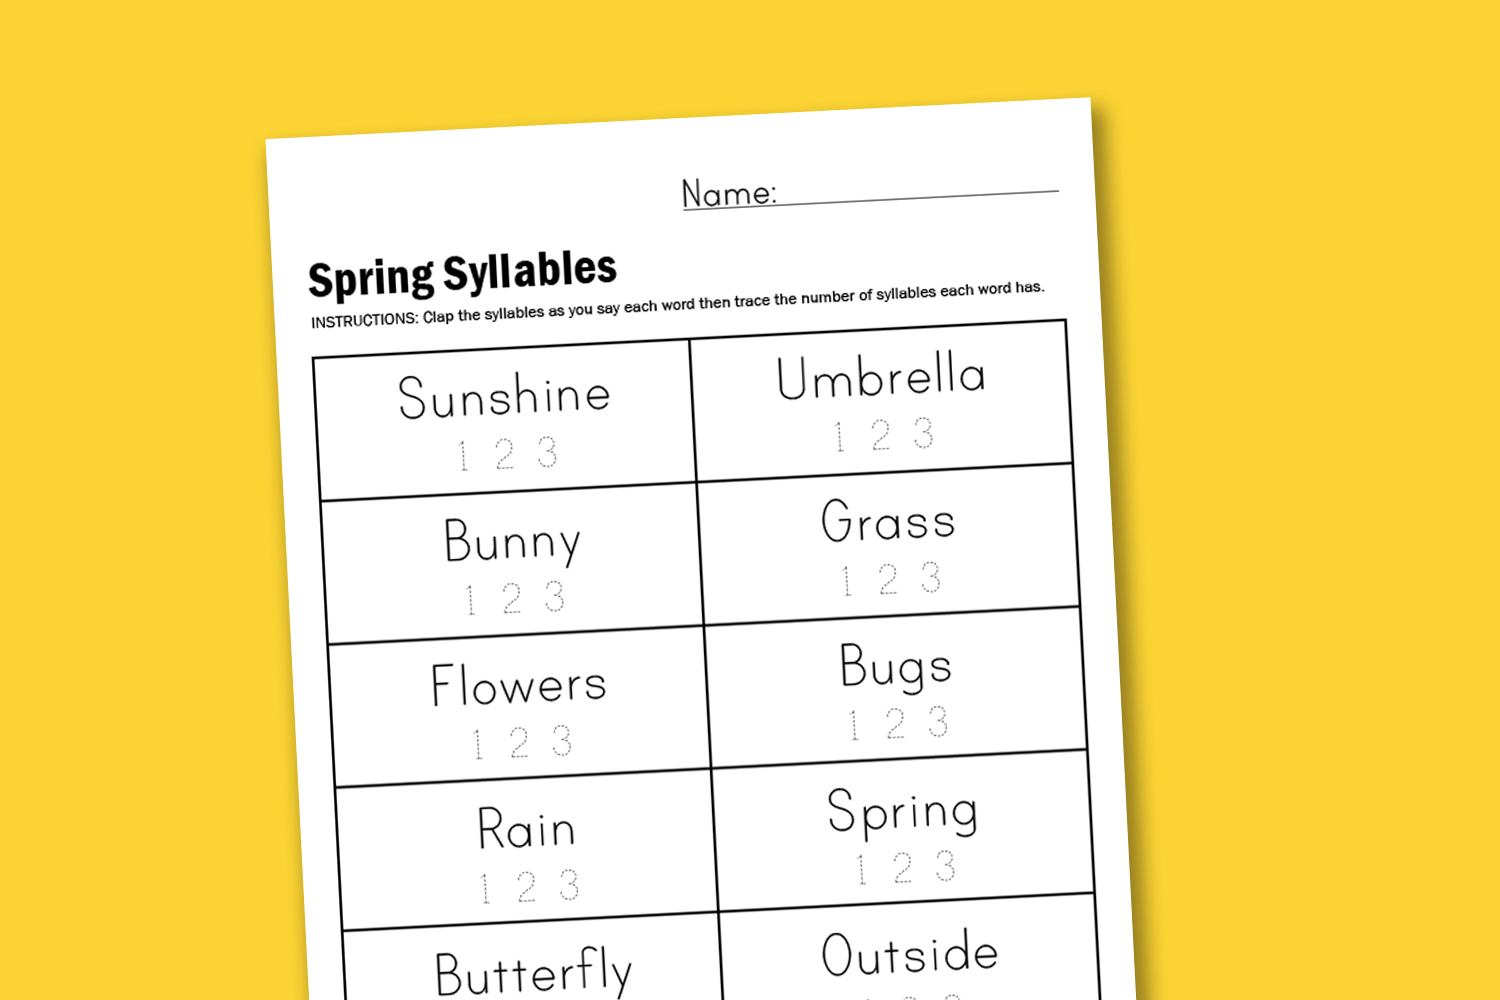 Worksheet Wednesday: Spring Syllables - Paging Supermom